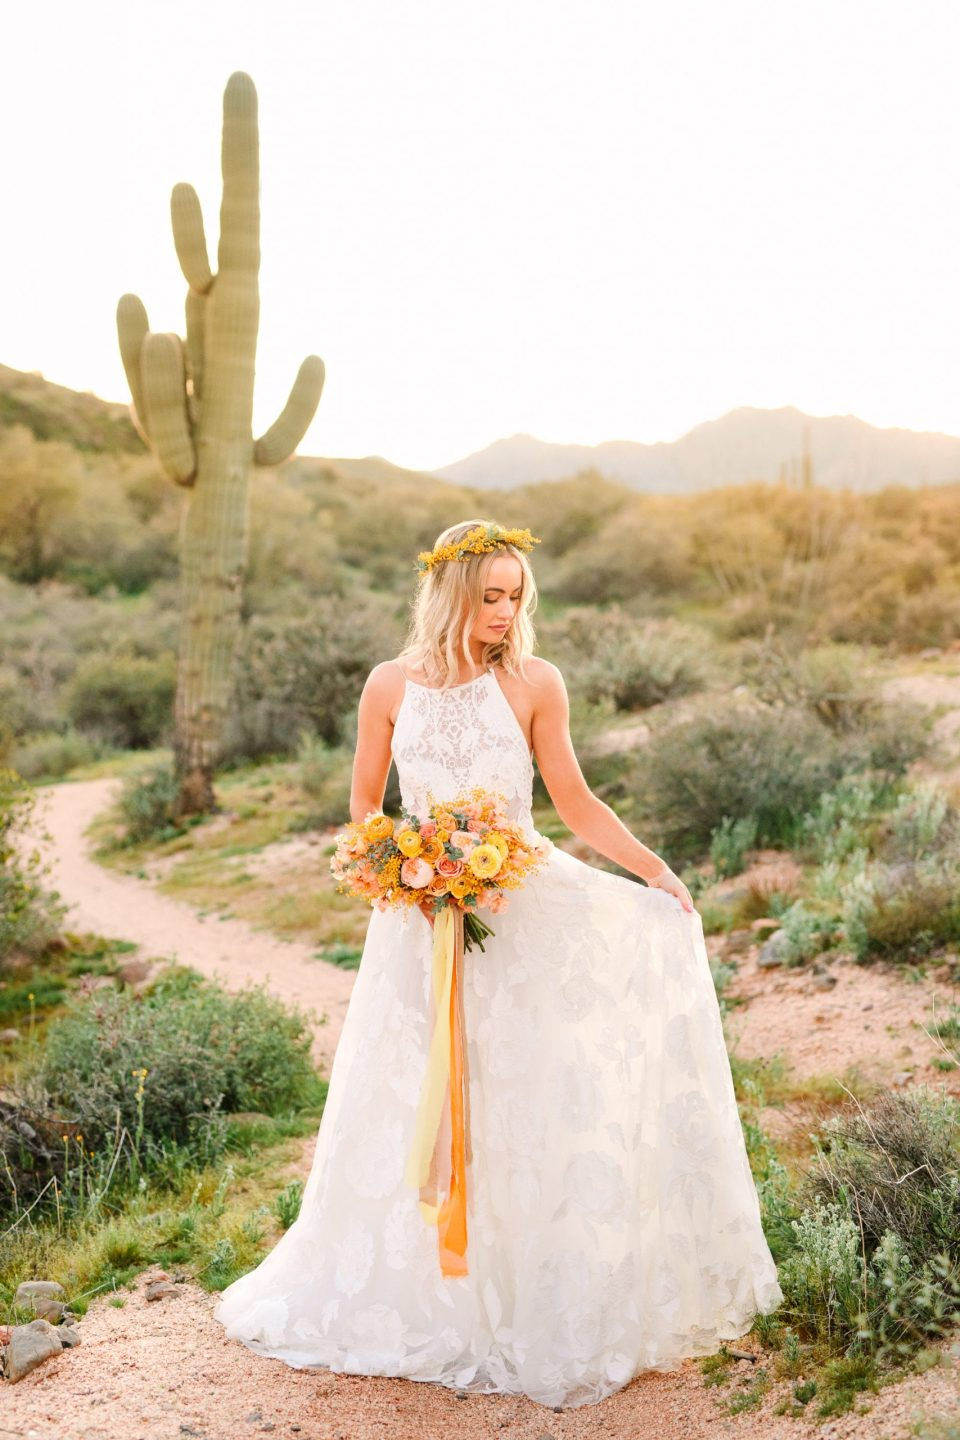 Bride in cactus desert with yellow bouquet by Mary Costa Photography